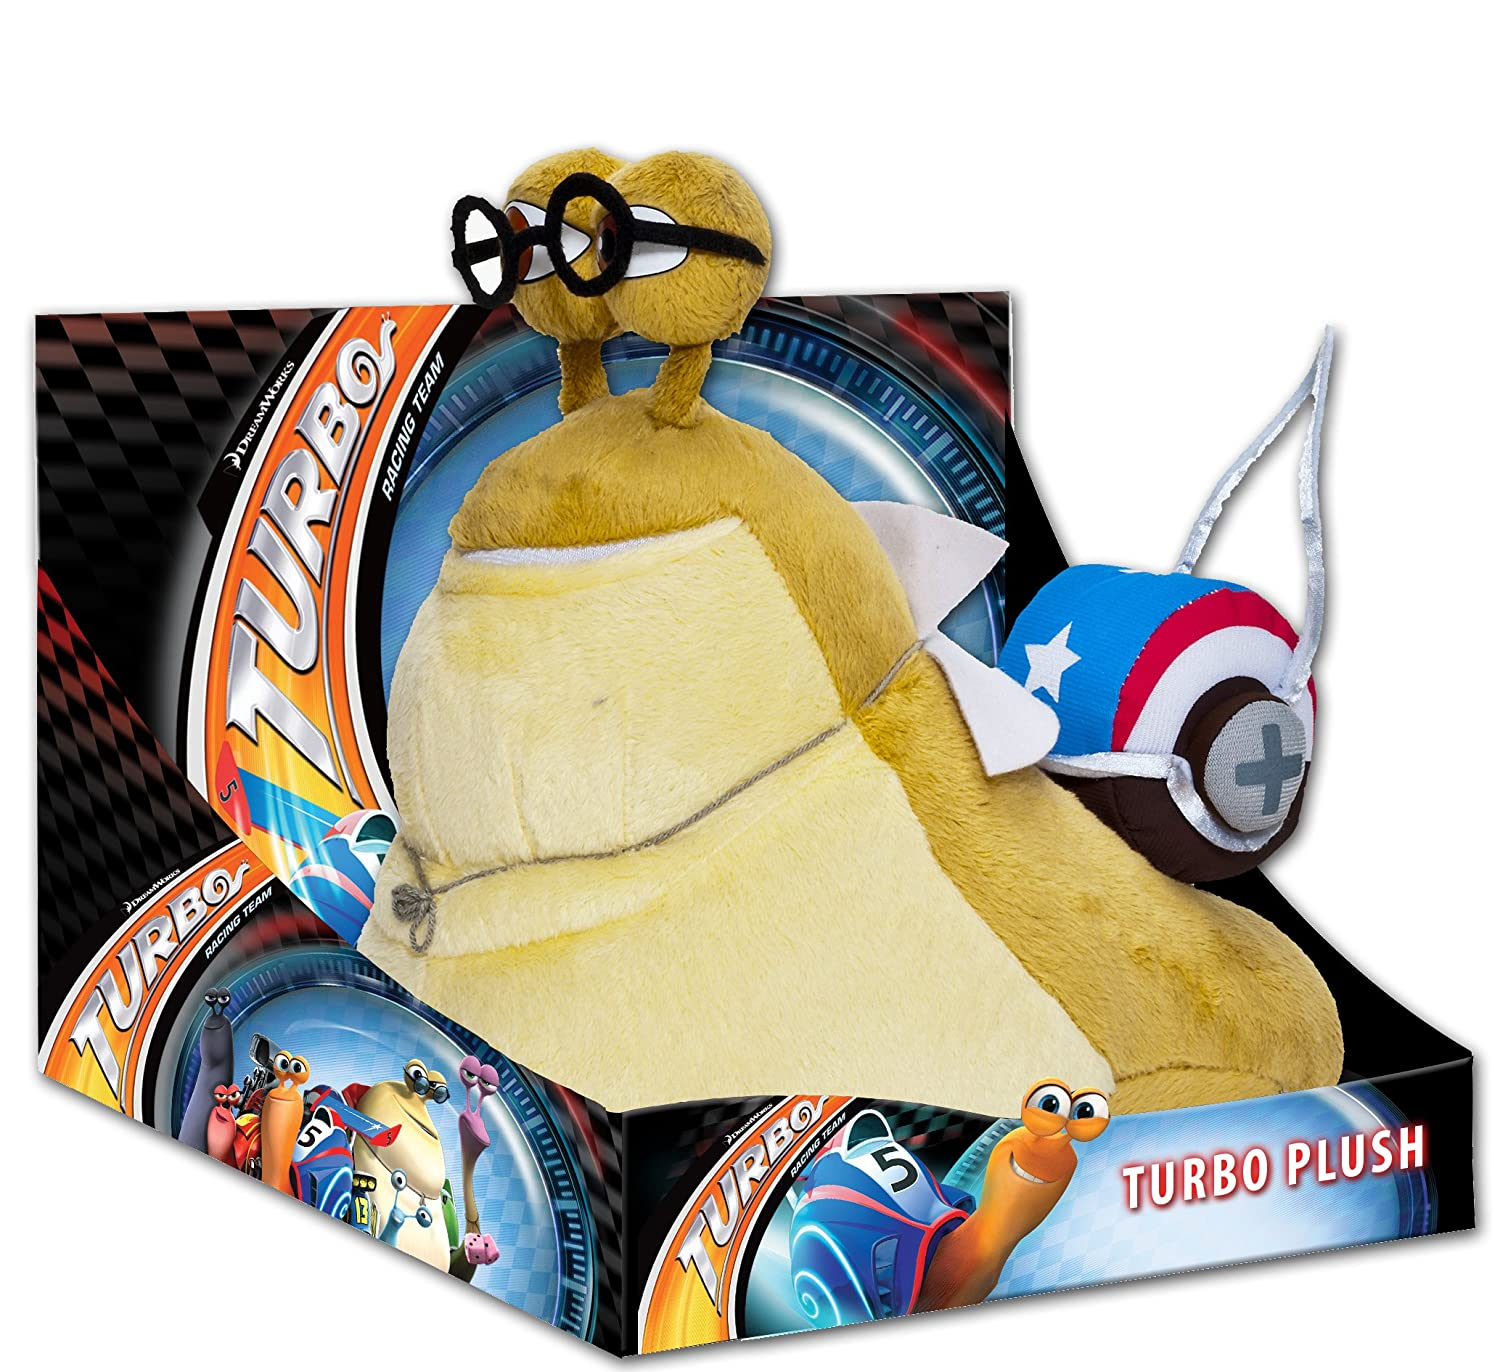 Joy Toy 339984 Turbo - Caracol de peluche en caja expositora (25 cm), color beige: Amazon.es: Juguetes y juegos